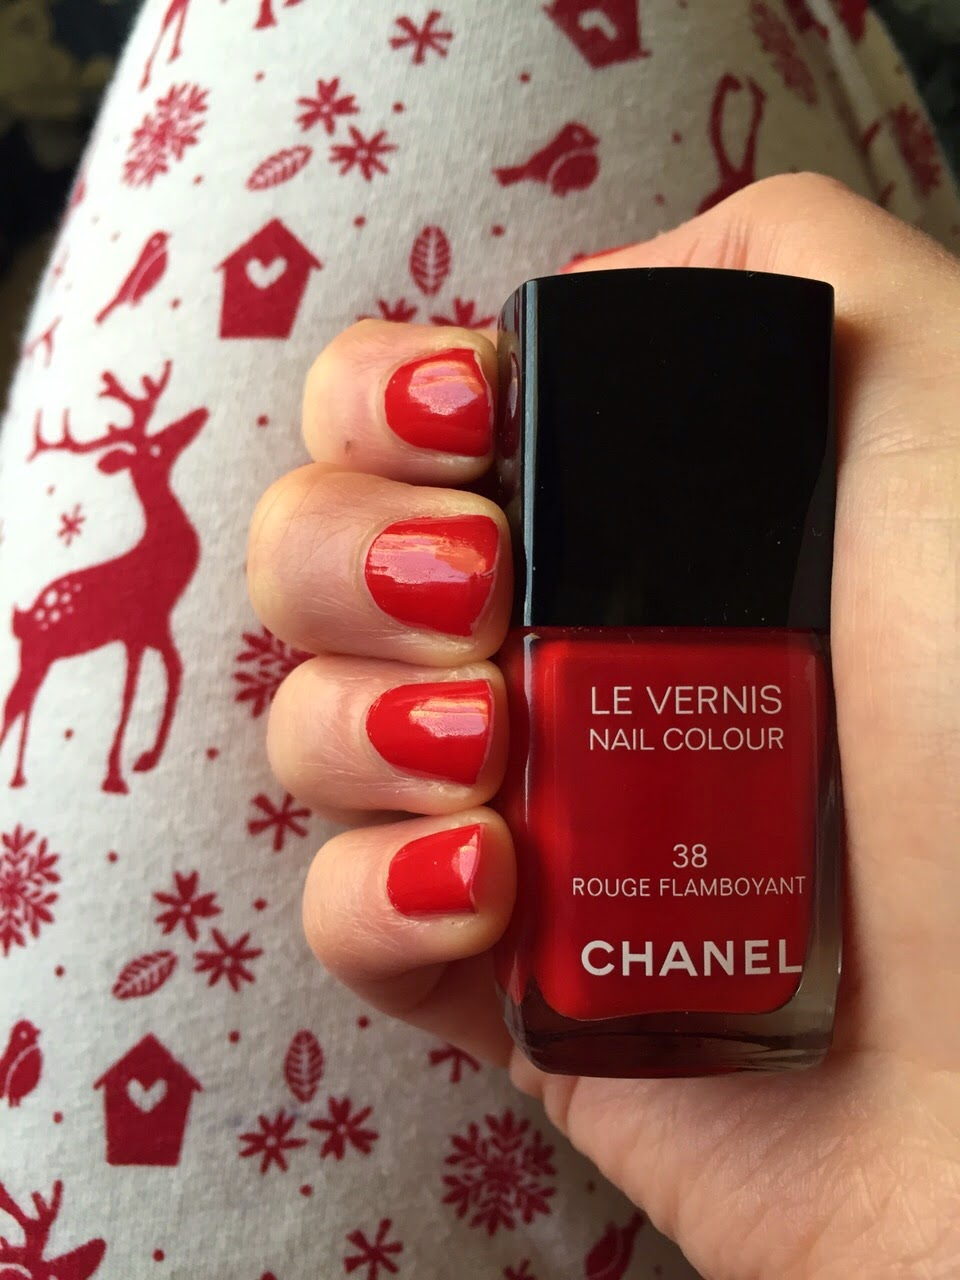 Chanel Le Vernis Nail Colour - 38 Rouge Flamboyant